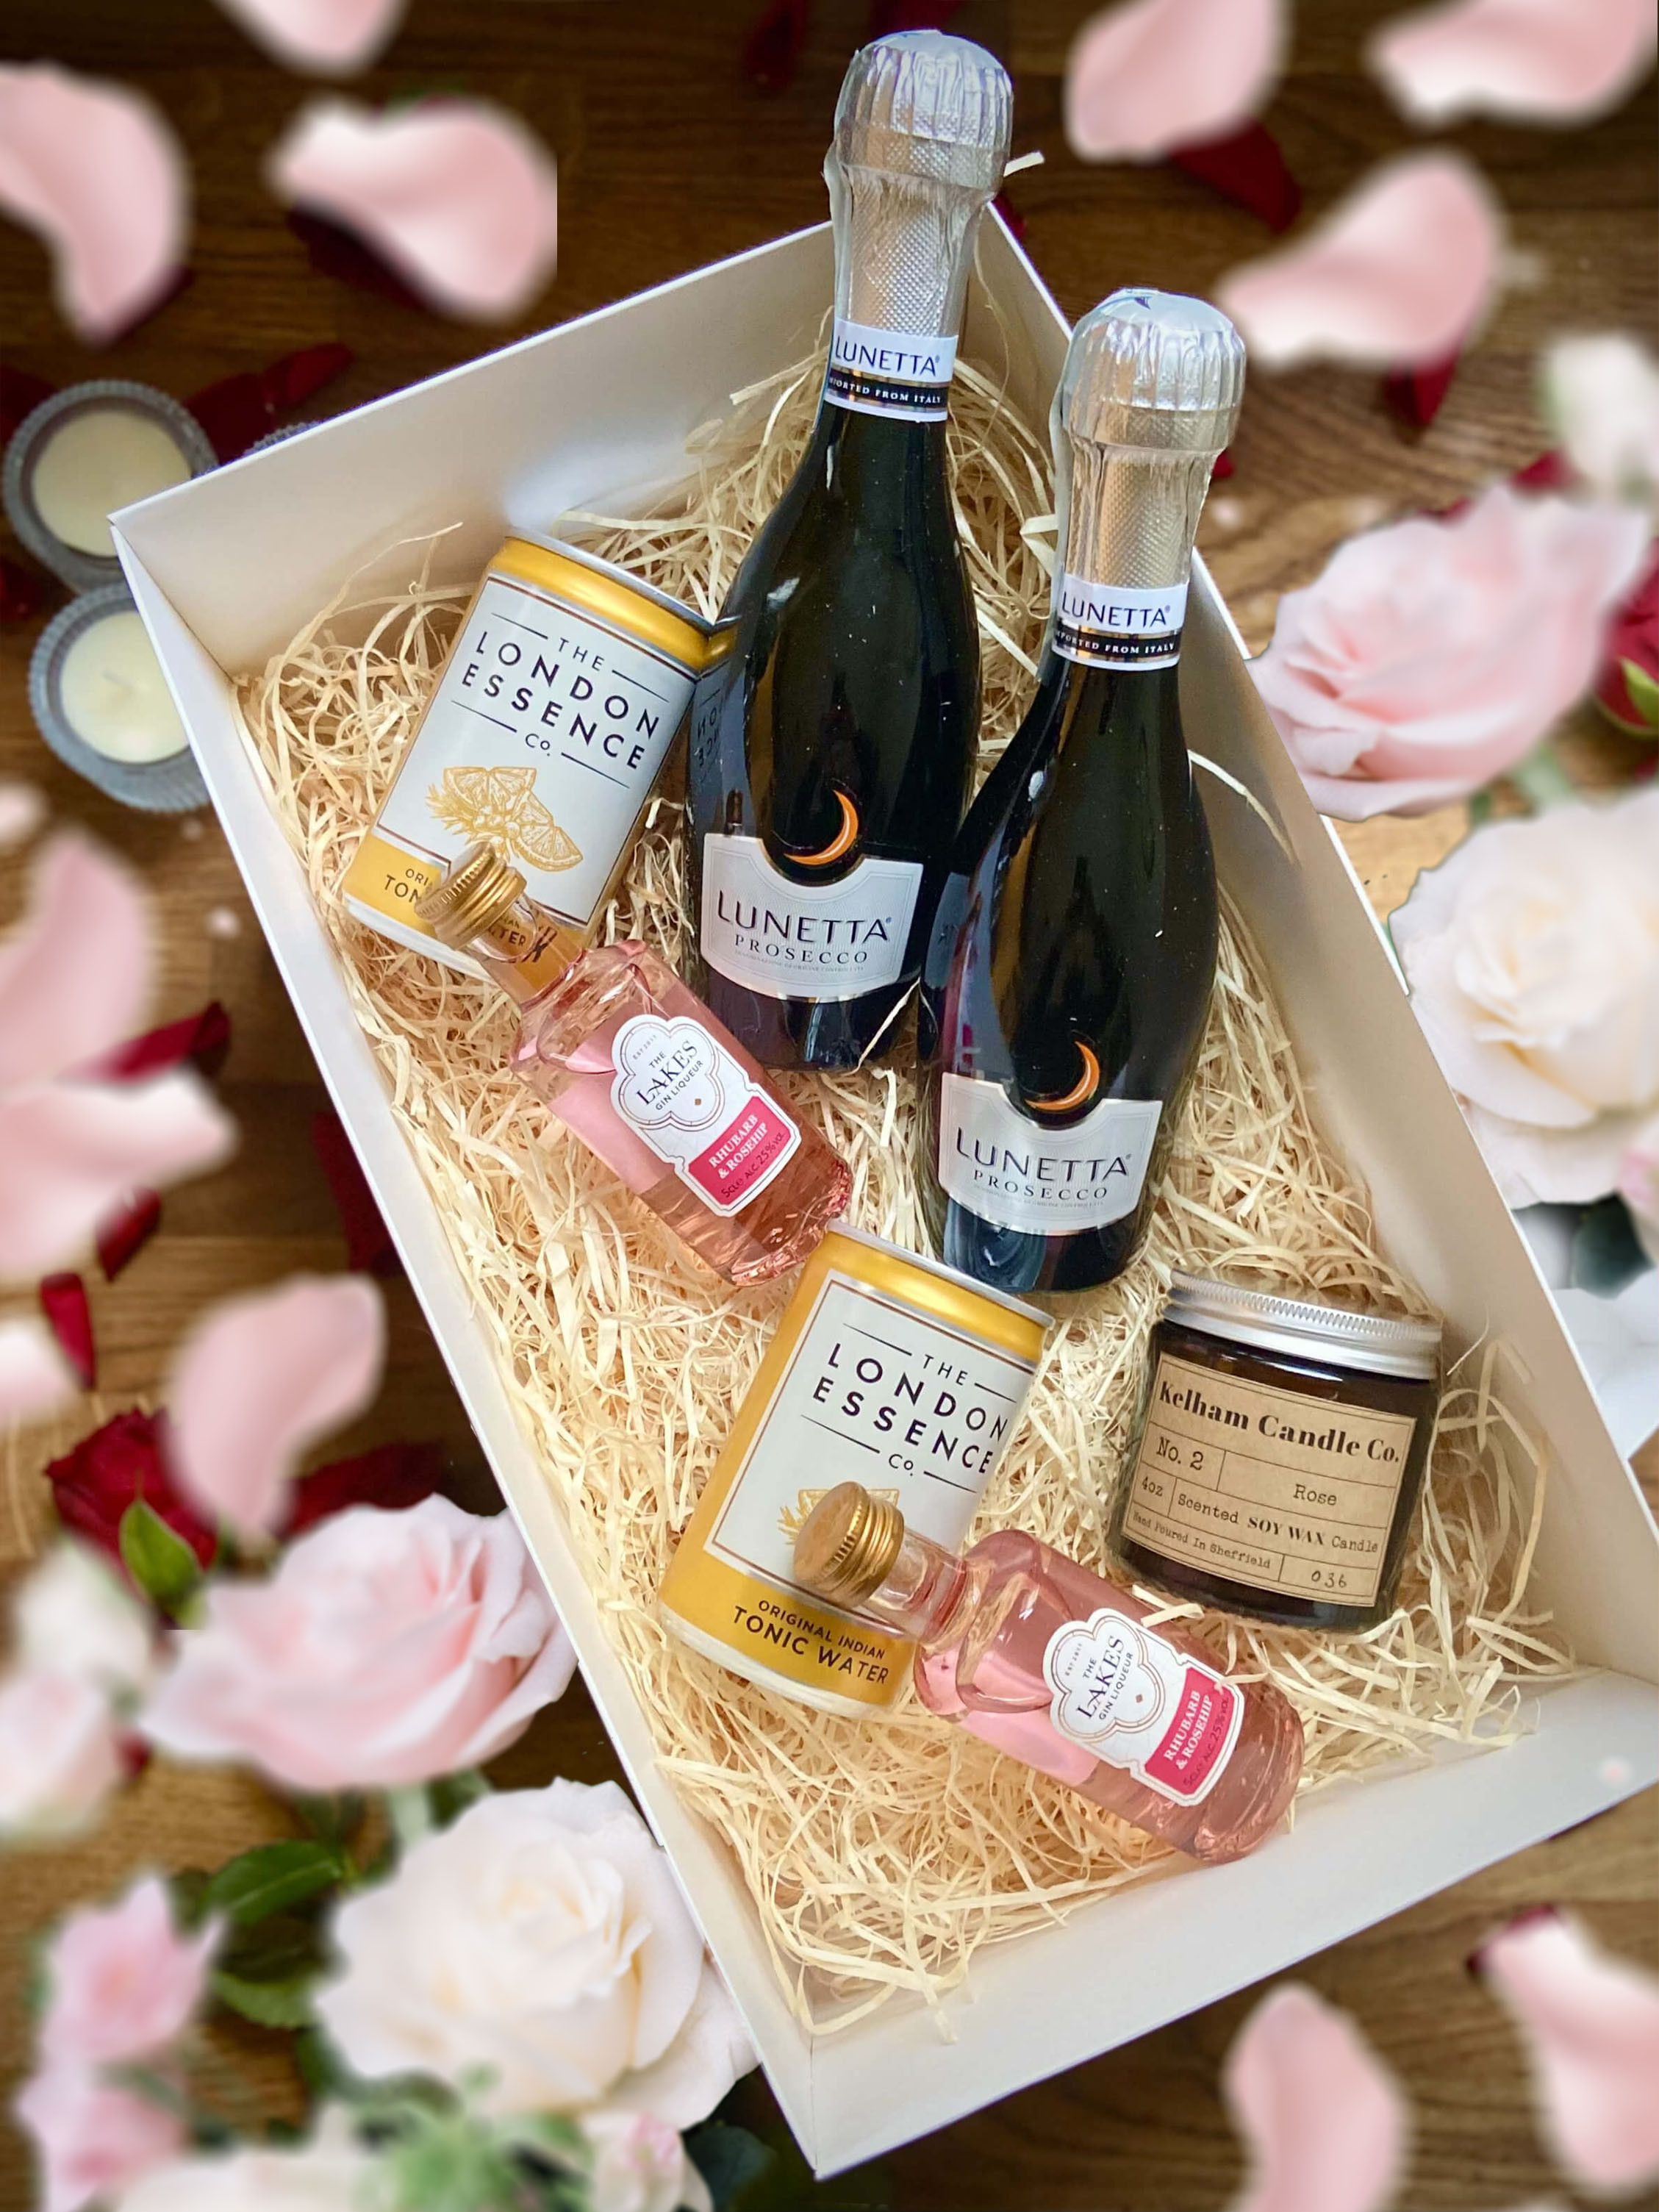 Mother's Day Gift Box for 2 with Kelham Candle Co